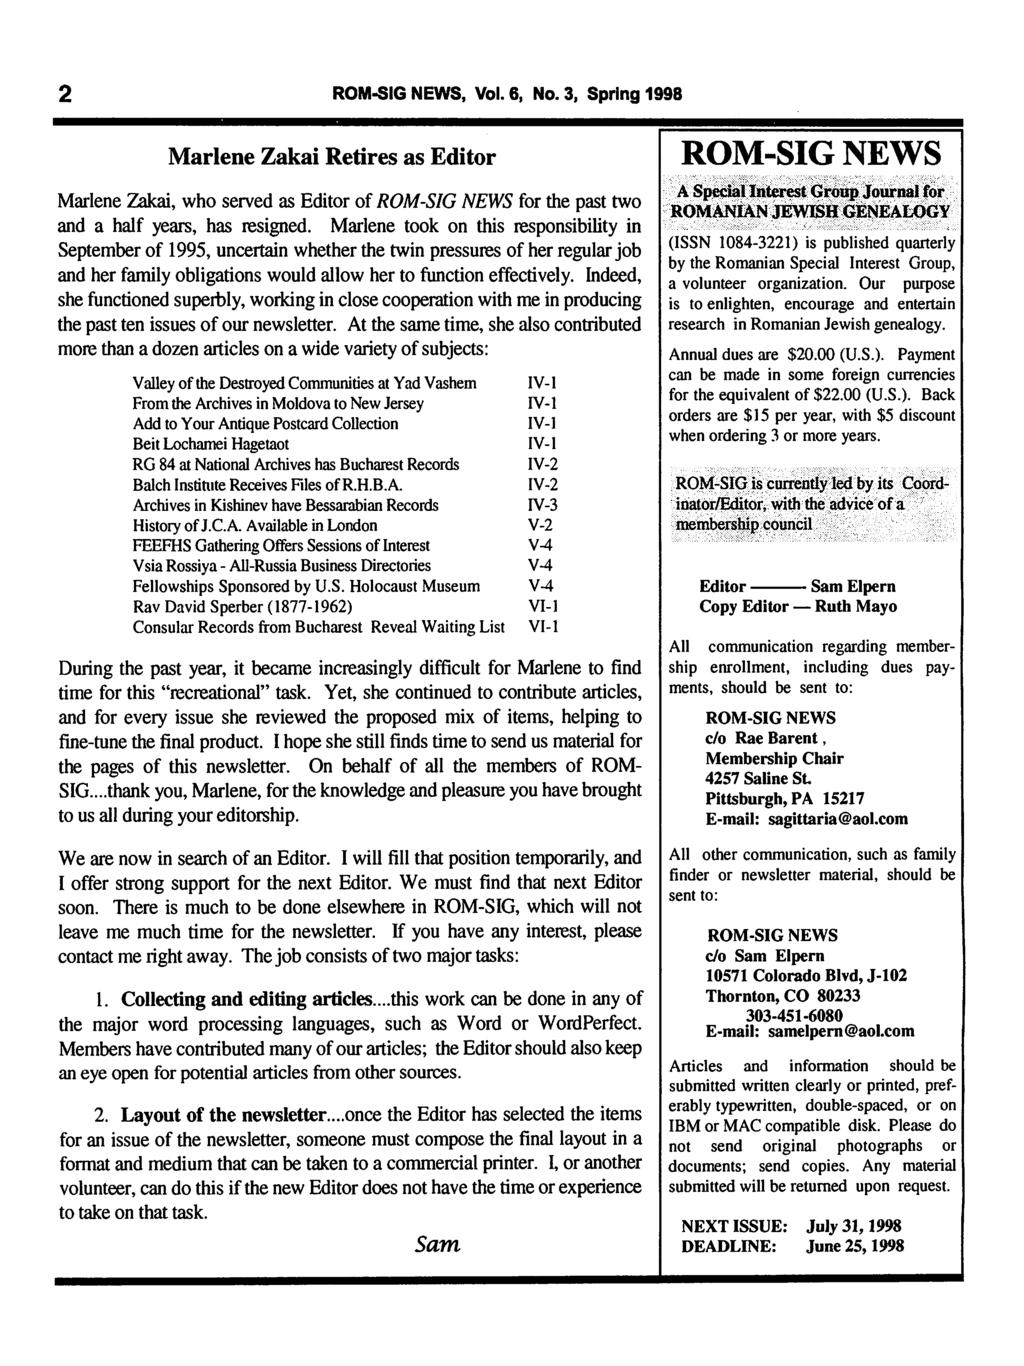 ROM-SIG NEWS  A Special Interest Group Journal for ROMANIAN